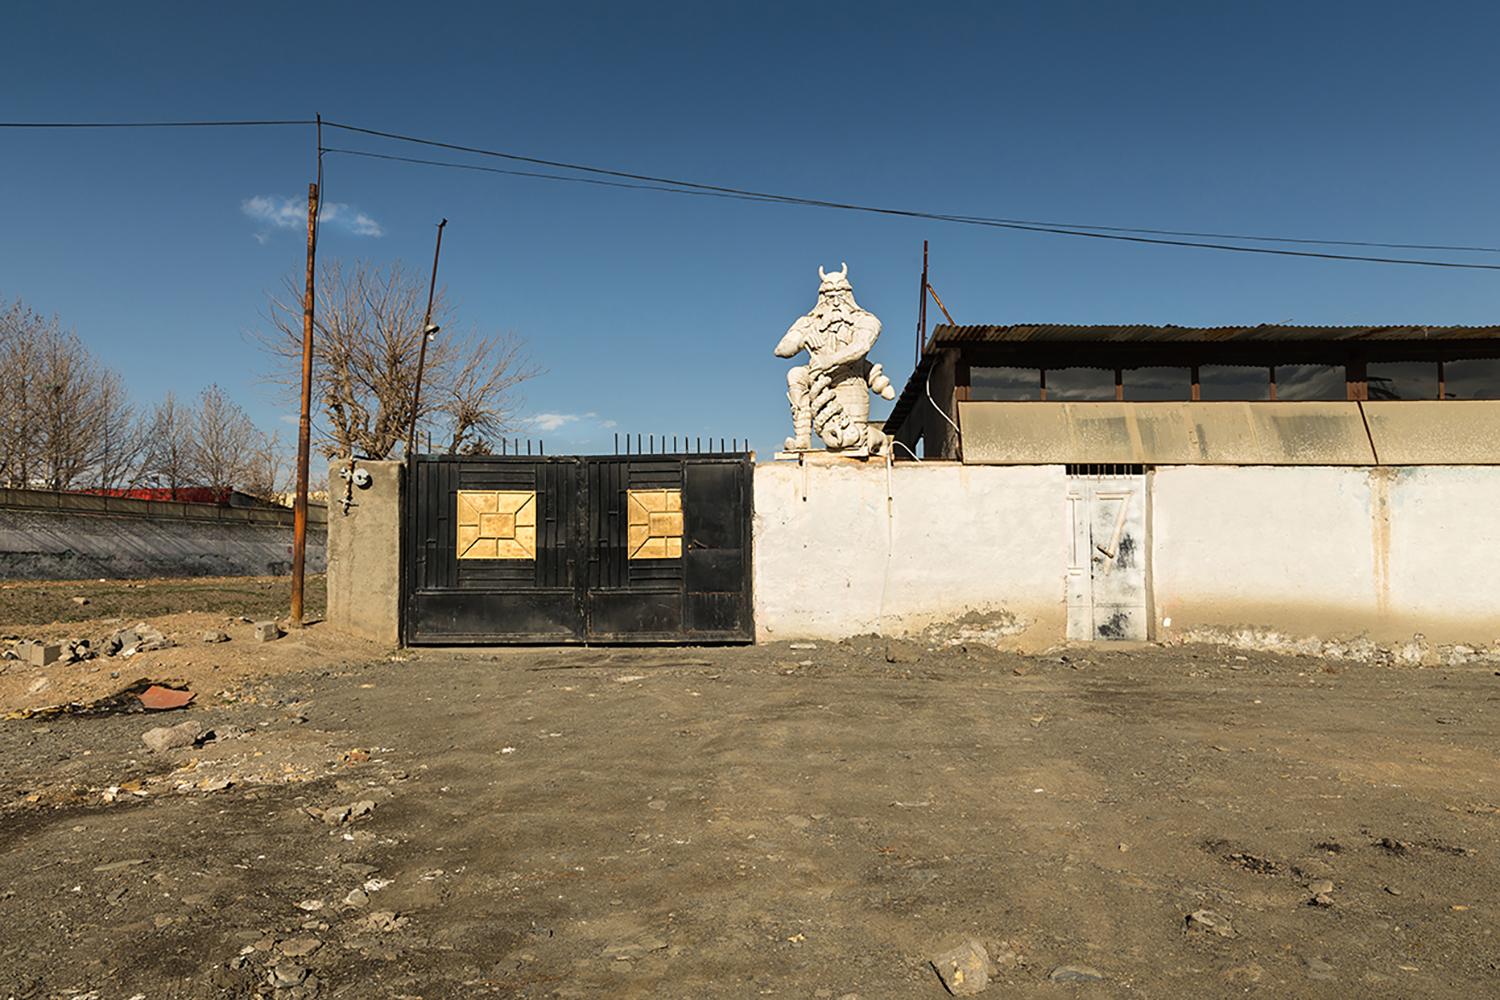 The statue of Rostam( or Rustam , son of Zal and Rudaba, the most celebrated legendary hero in Shahnameh and Iranian mythology), is placed on the wall of a house. Shandiz, Iran.